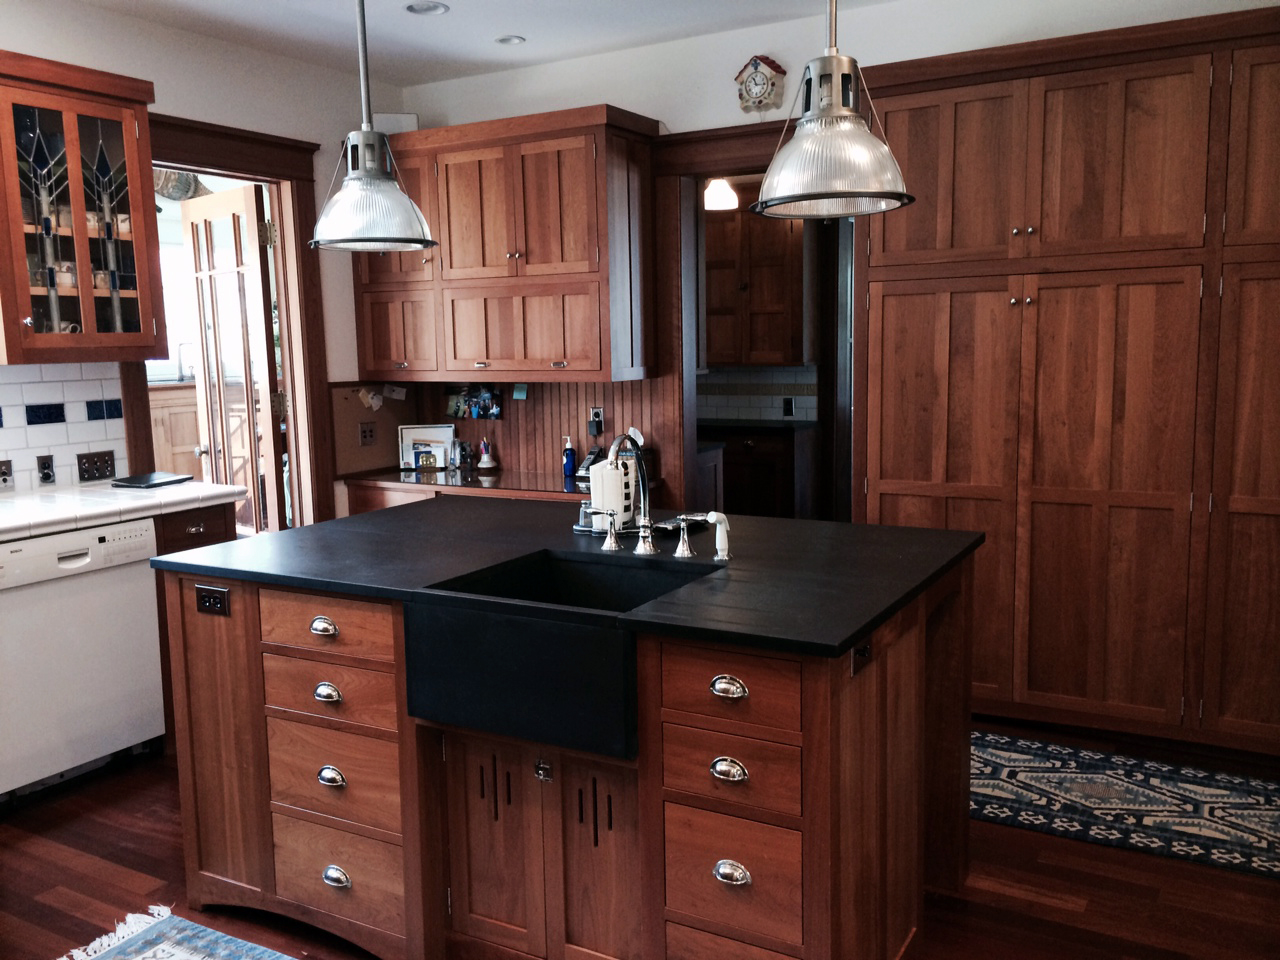 northern Michigan kitchen design